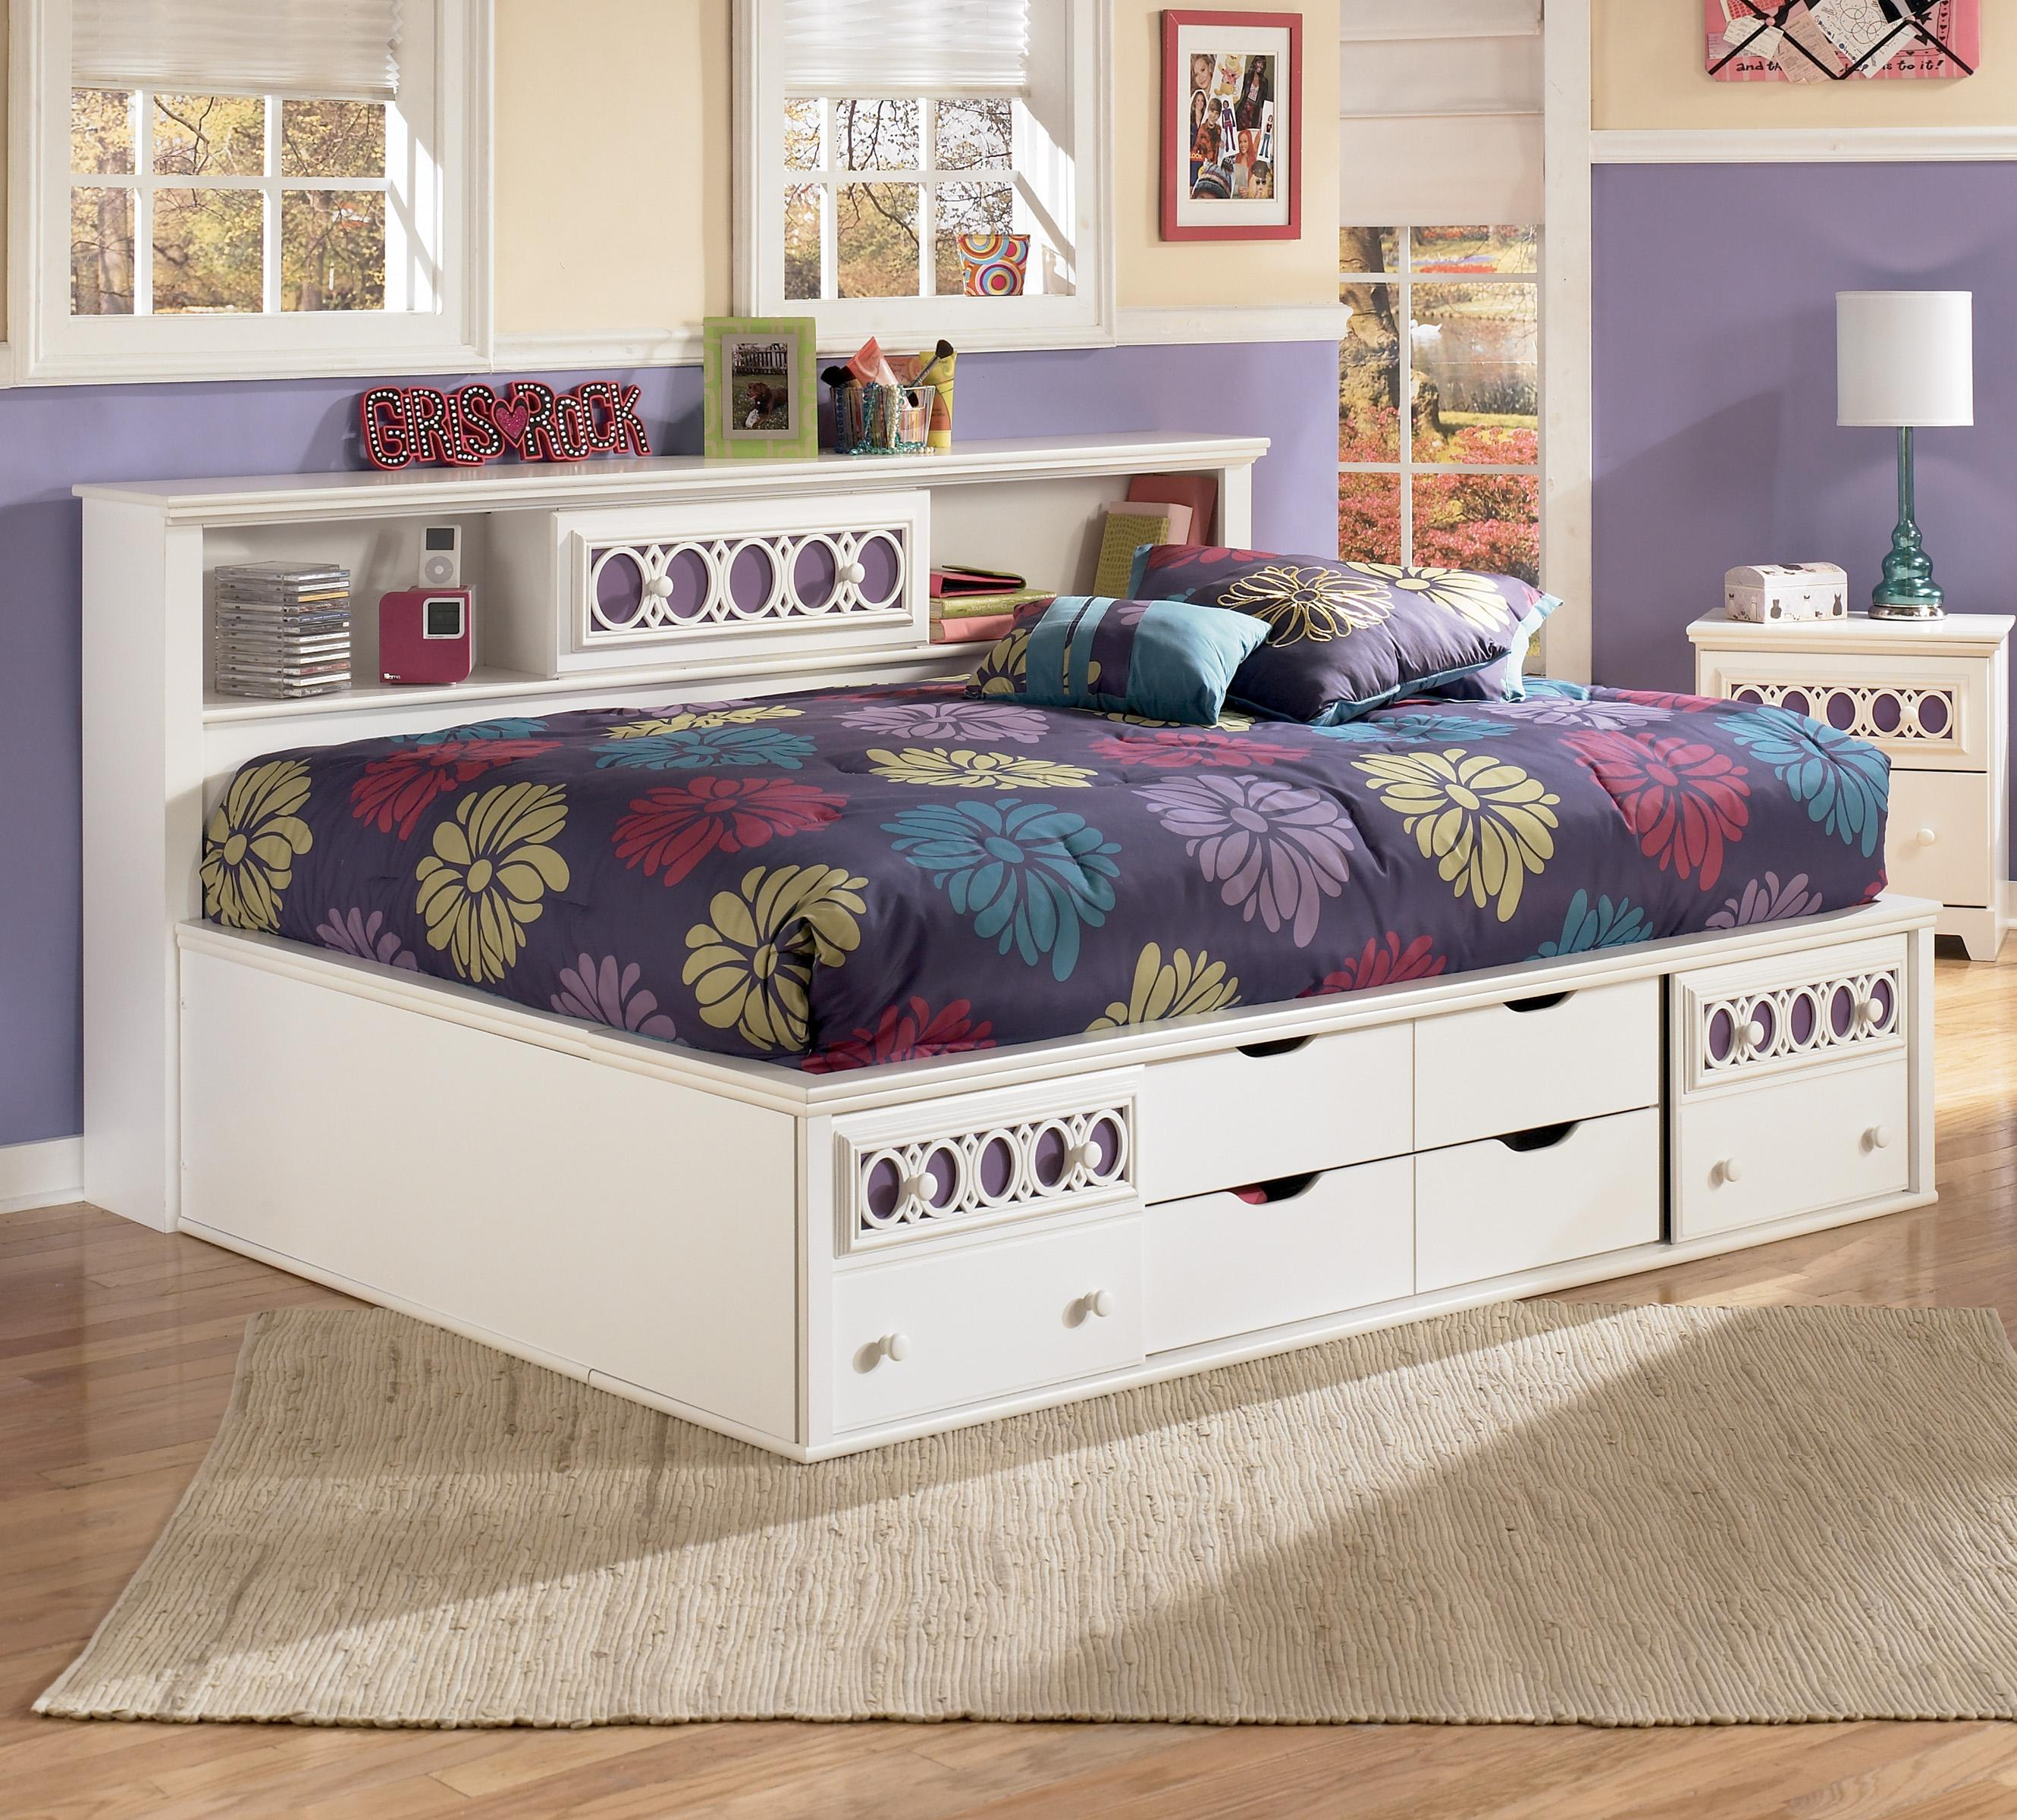 Signature design by ashley zoey full storage daybed Full size daybed with storage